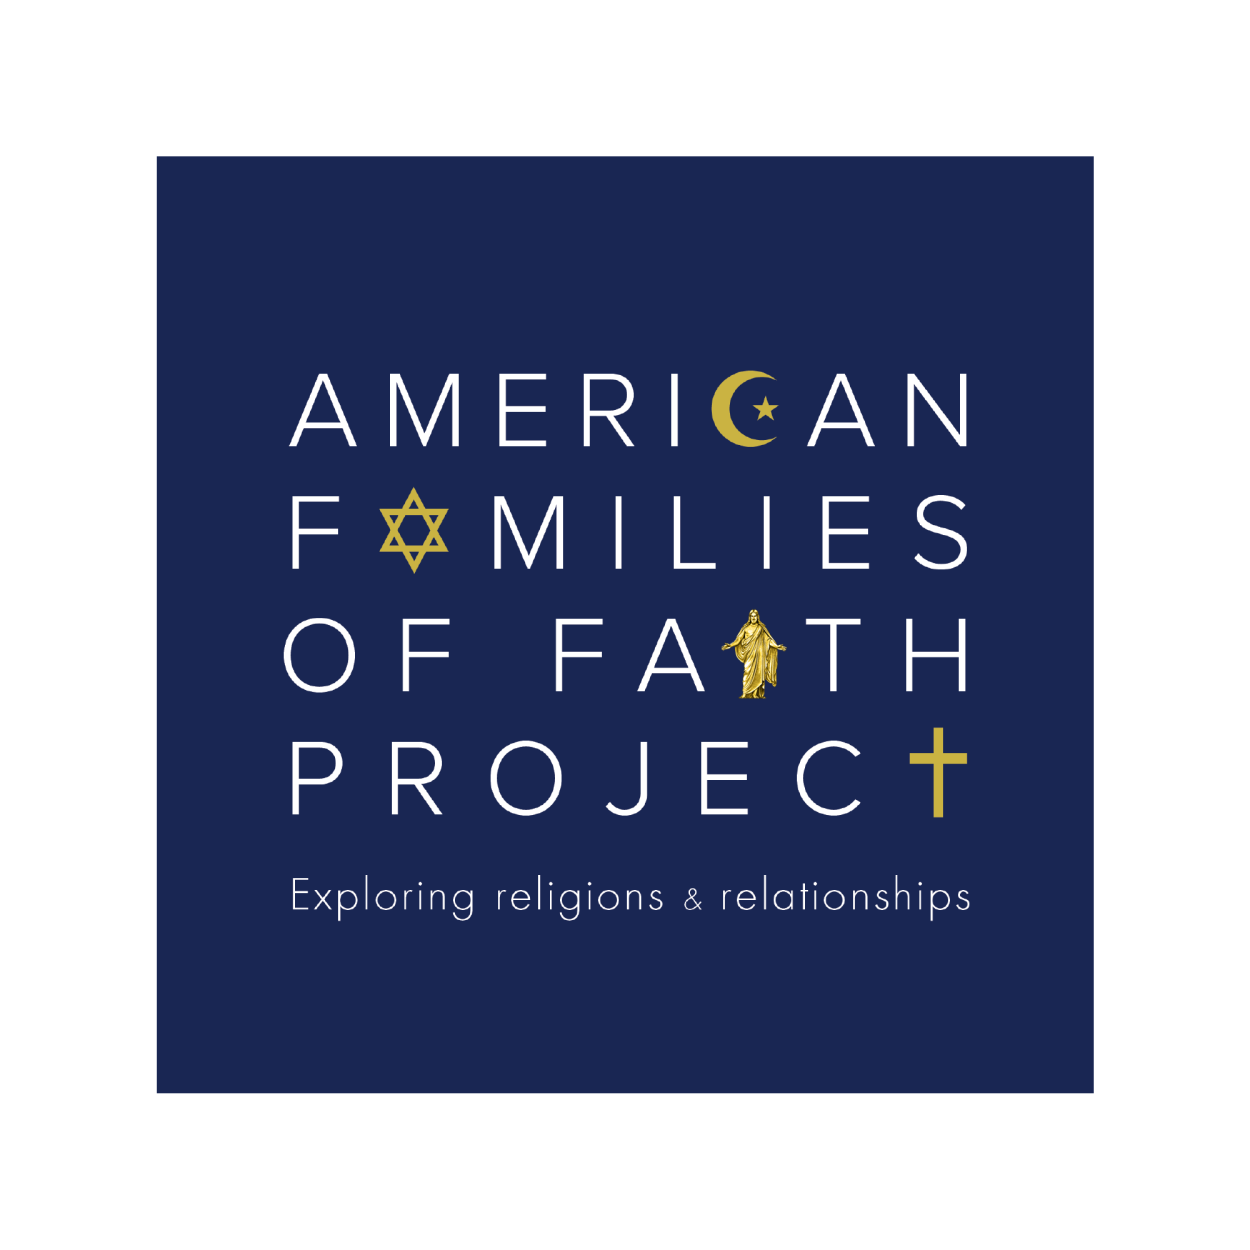 Strengths In Diverse American Families of Faith